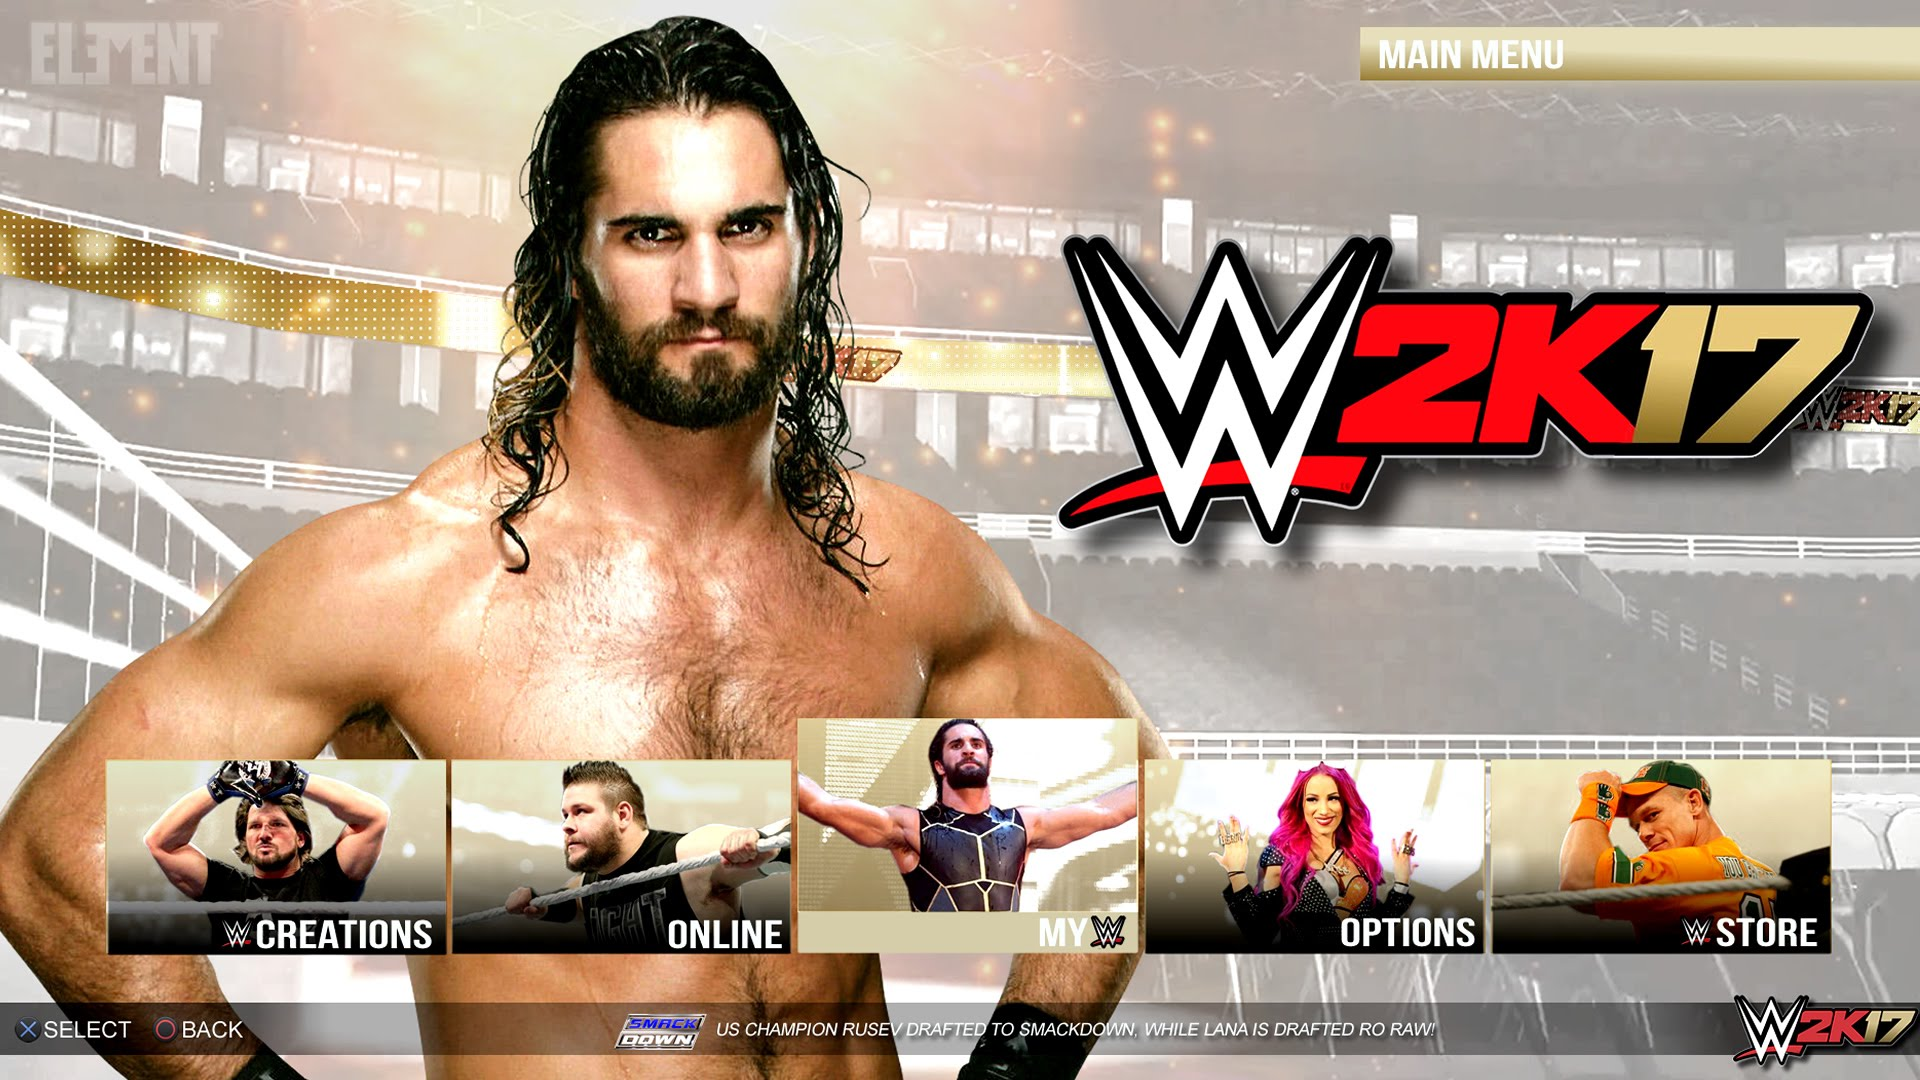 Free Download Wwe 2k17 Hd Wallpapers 1920x1080 For Your Desktop Mobile Tablet Explore 99 Wwe 2k18 Wallpapers Wwe 2k18 Wallpapers 2k18 Wallpapers Nba 2k18 Wallpapers